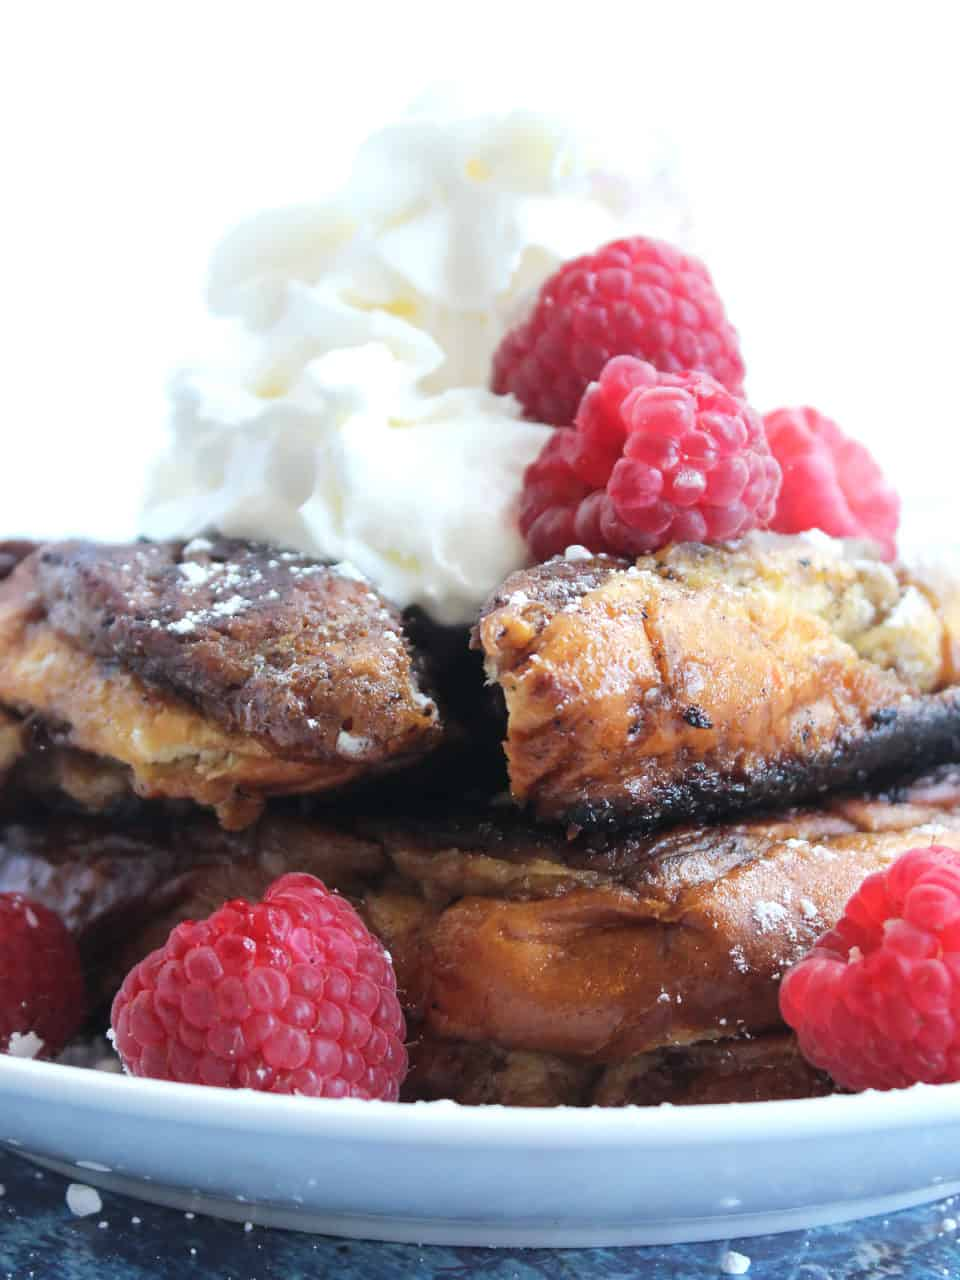 Chocolate French toast topped with whipped cream.